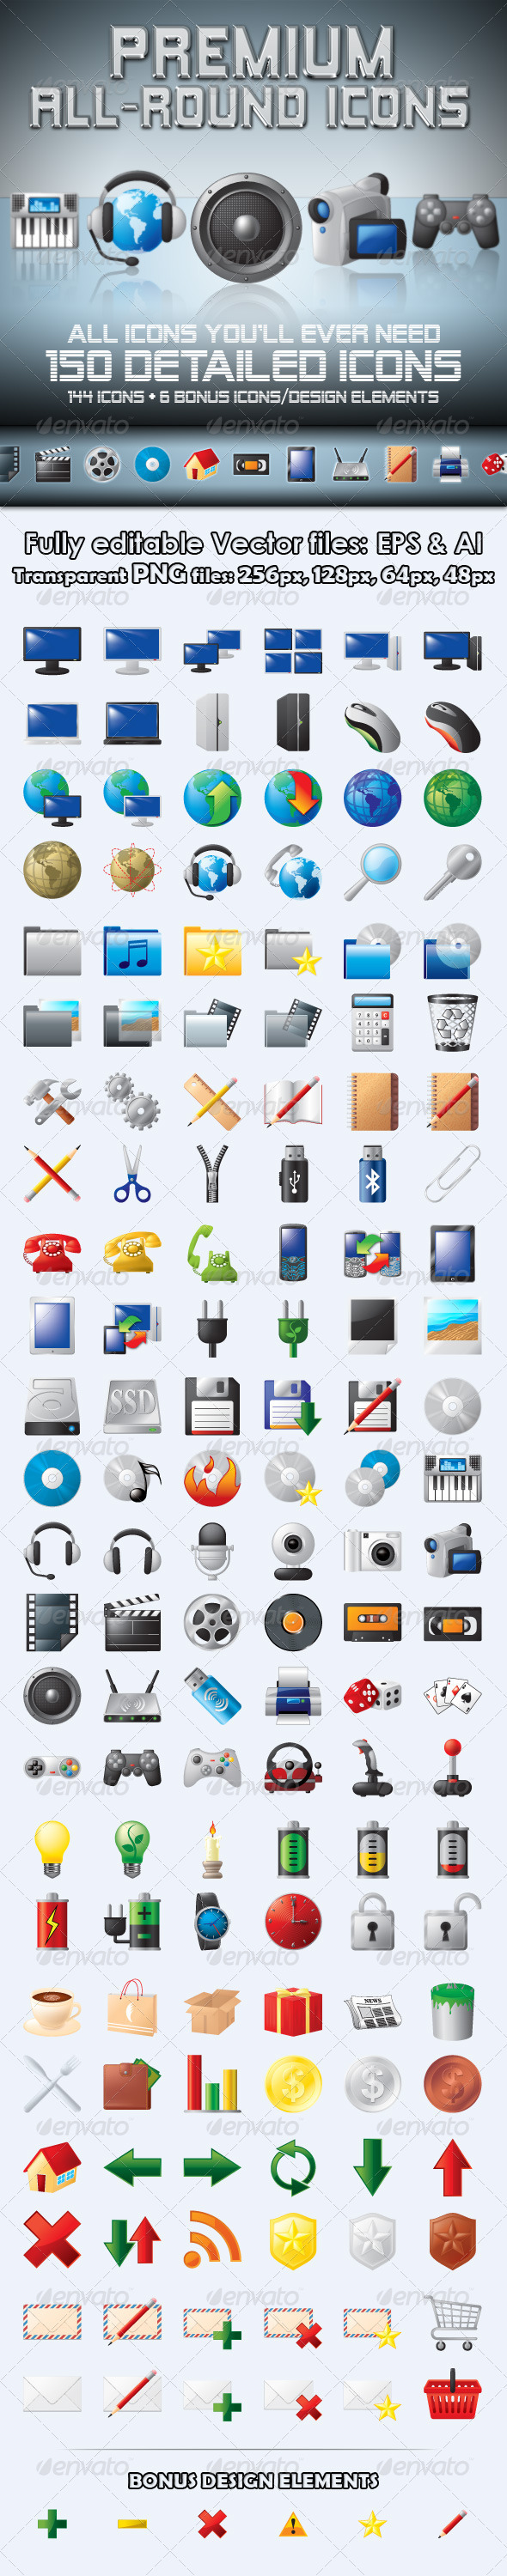 GraphicRiver Premium All-Round Icons 476097